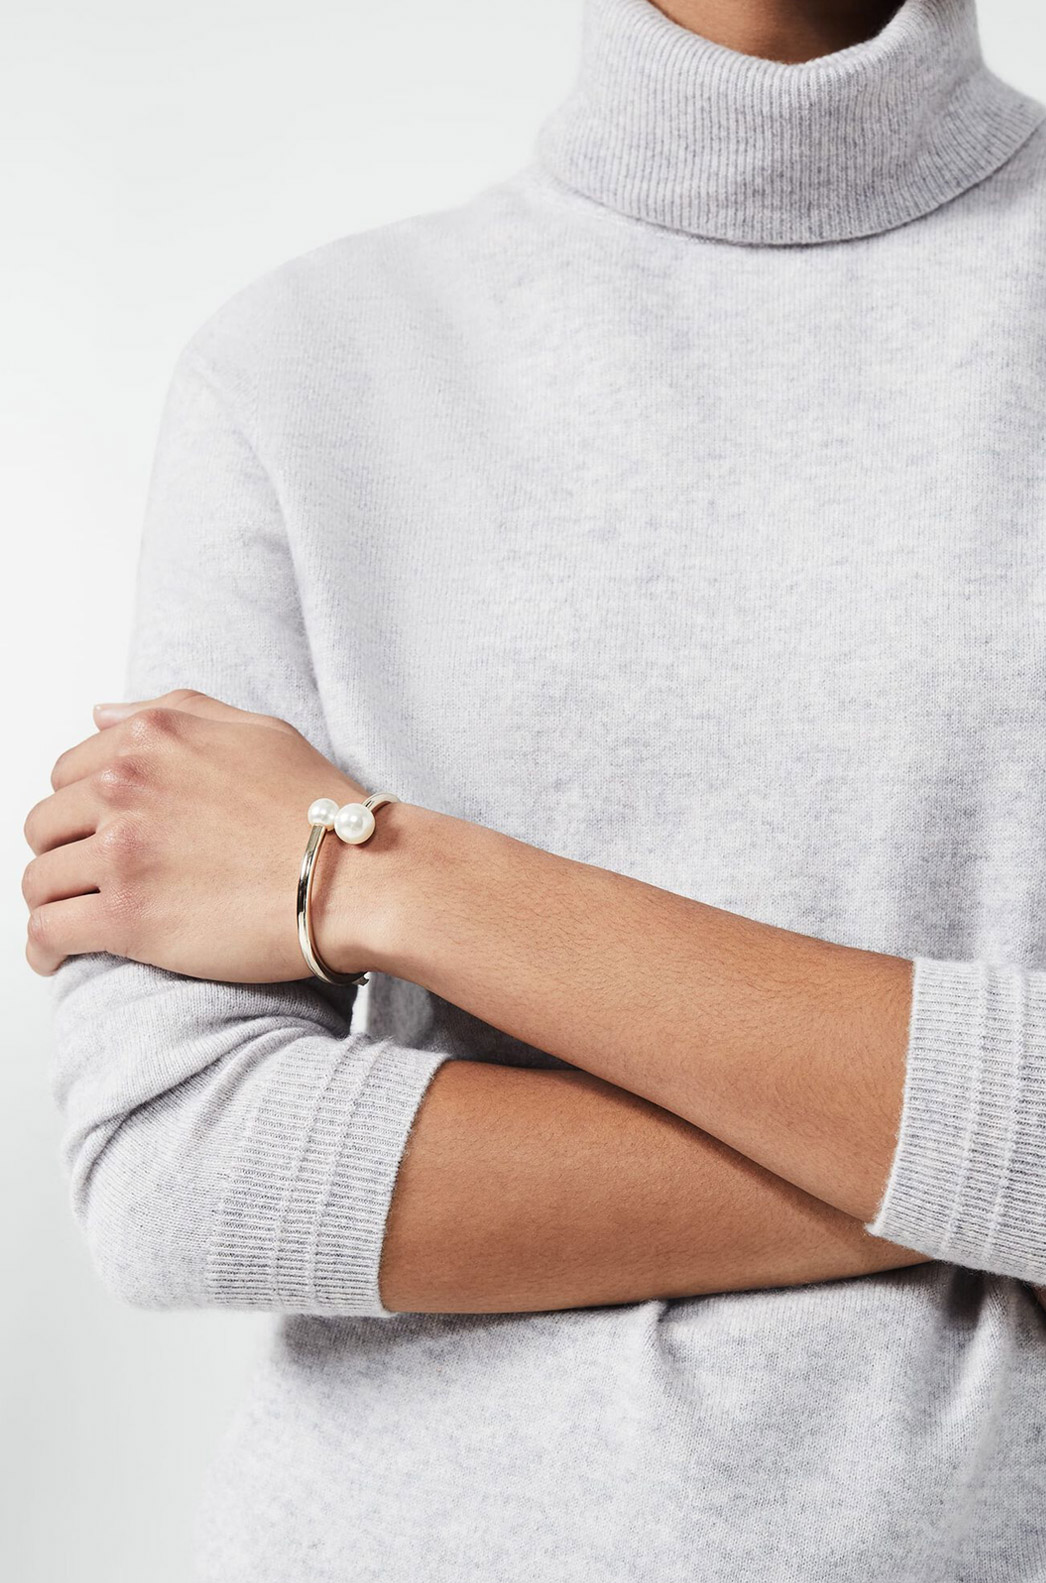 Model photographed wearing a grey jumper with a gold pearl embellished cuff.